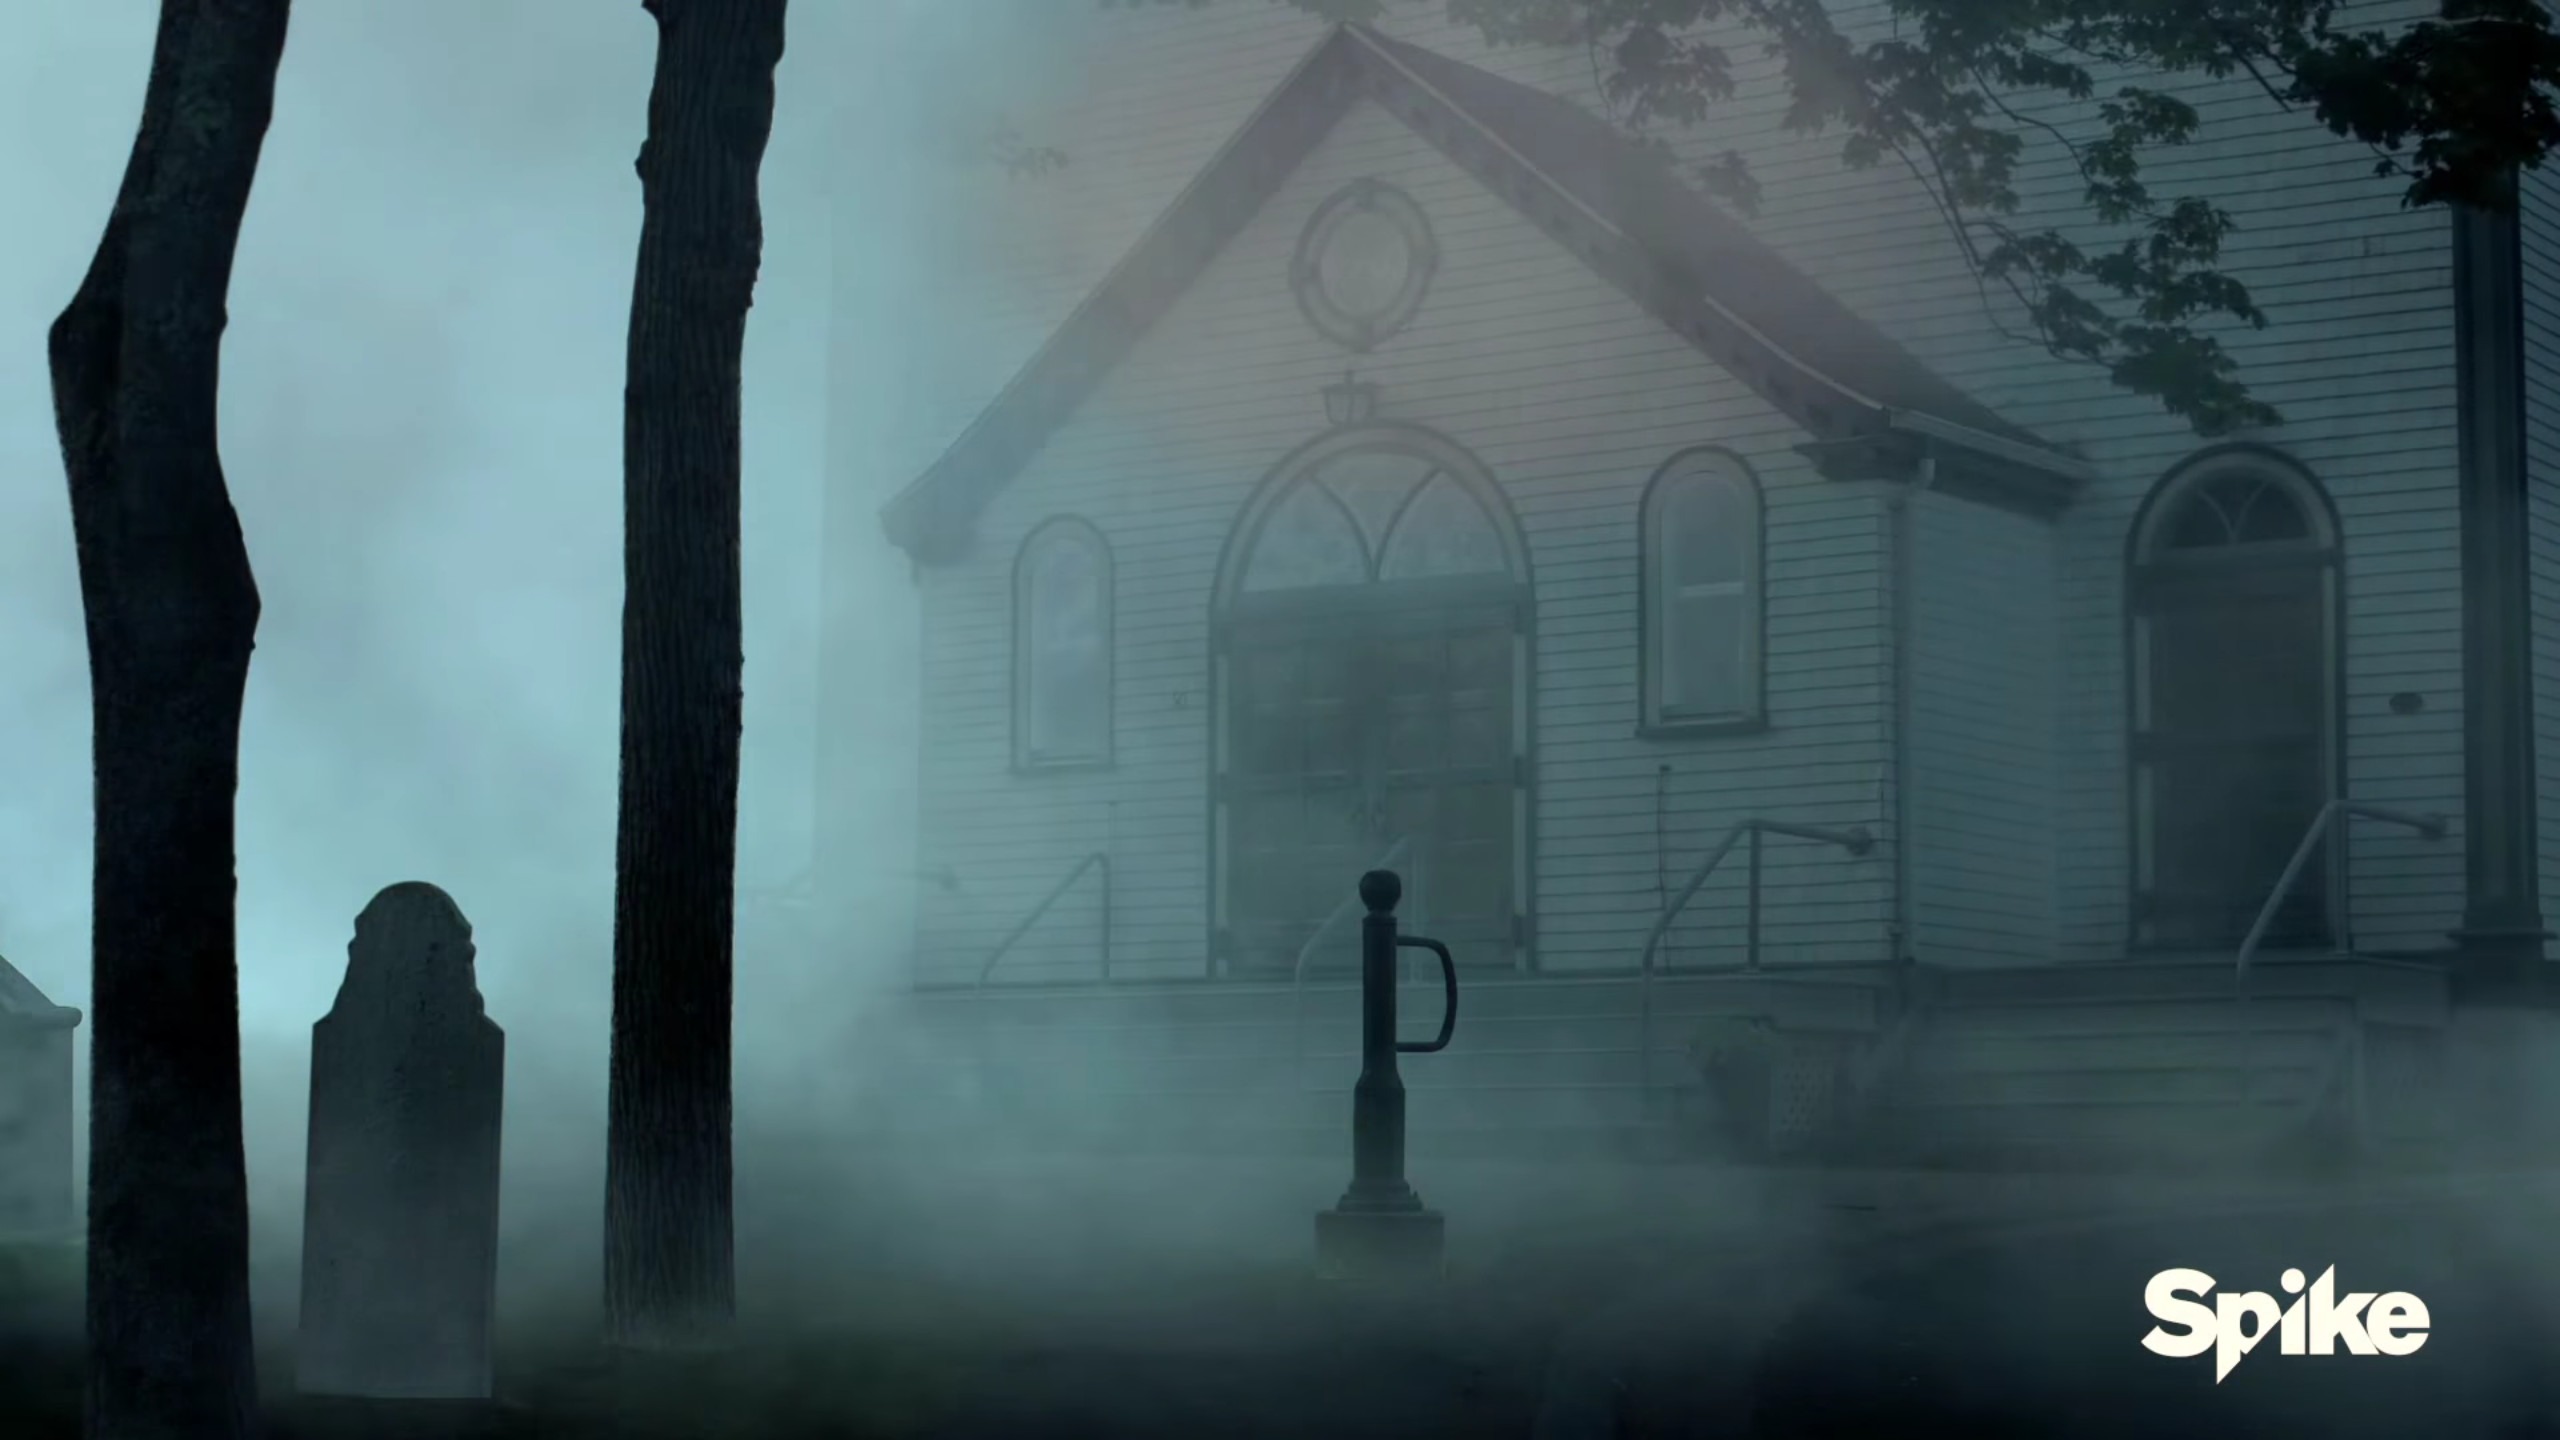 2560x1440 Spike's 'The Mist' TV Show Vs. The Book Shows How Timely Stephen King's  Story Still Is